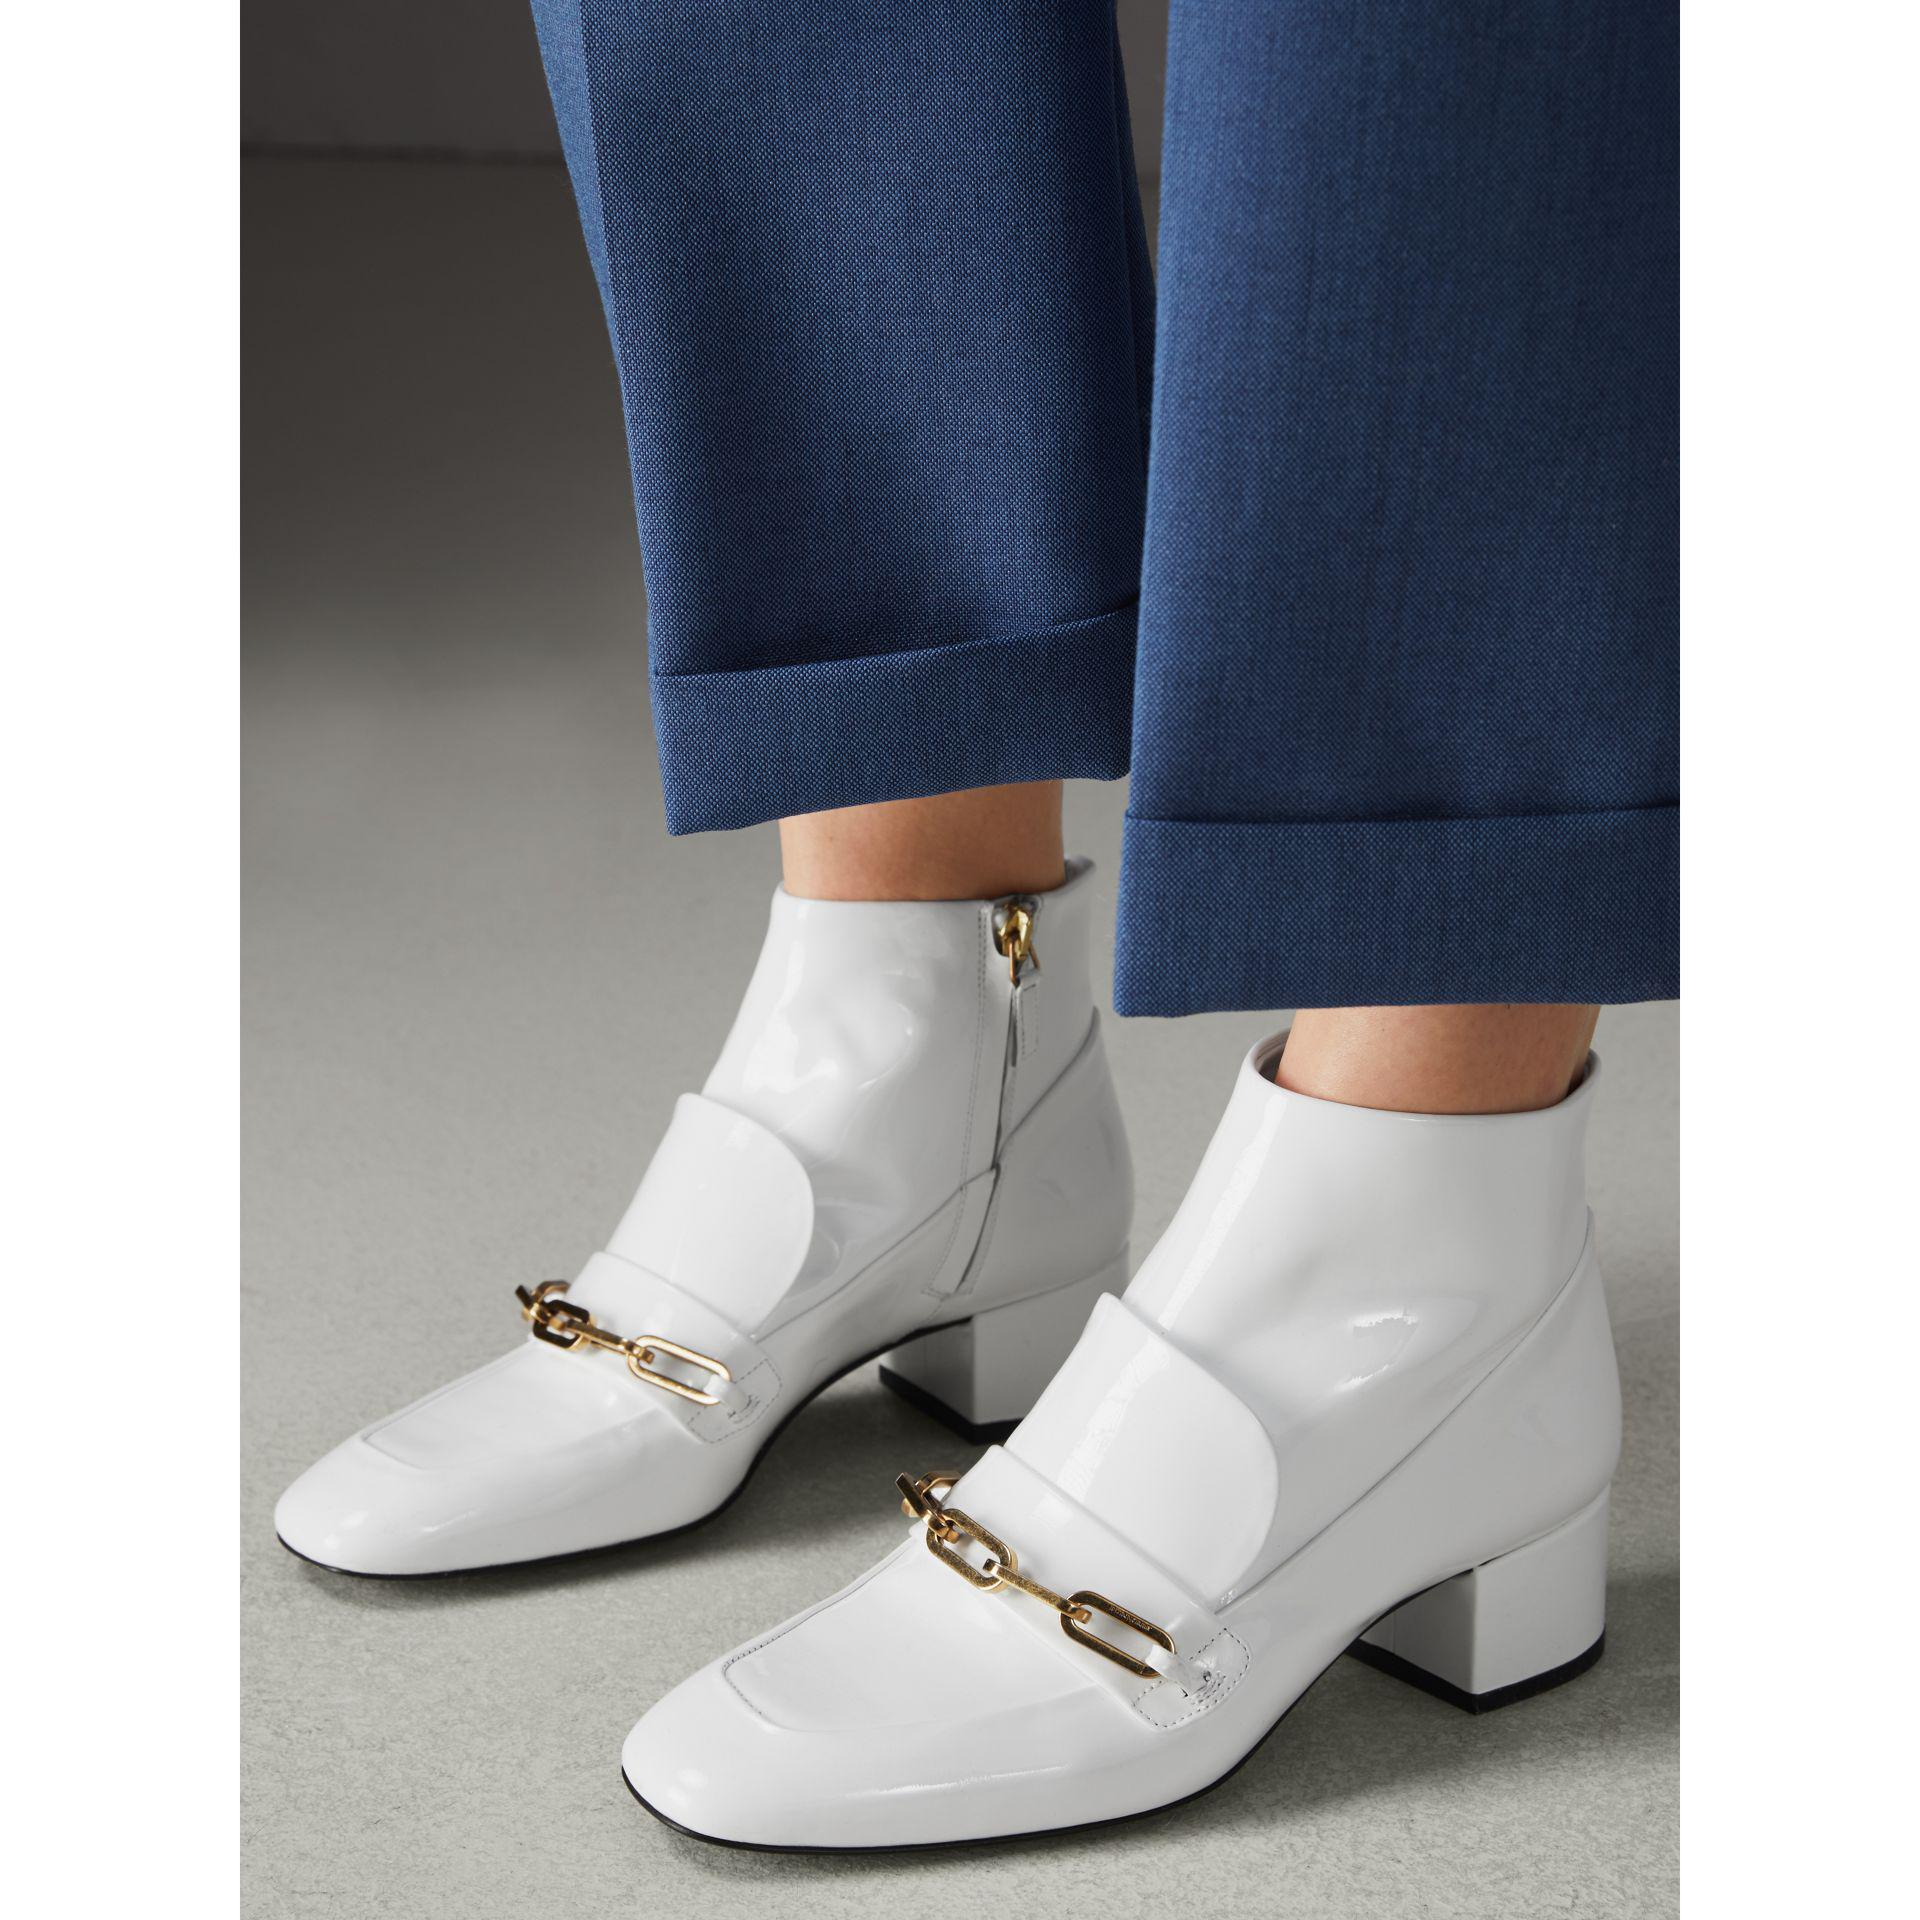 Buckle Ankle Lyst Burberry In Boots Link White SqfBEwFxf